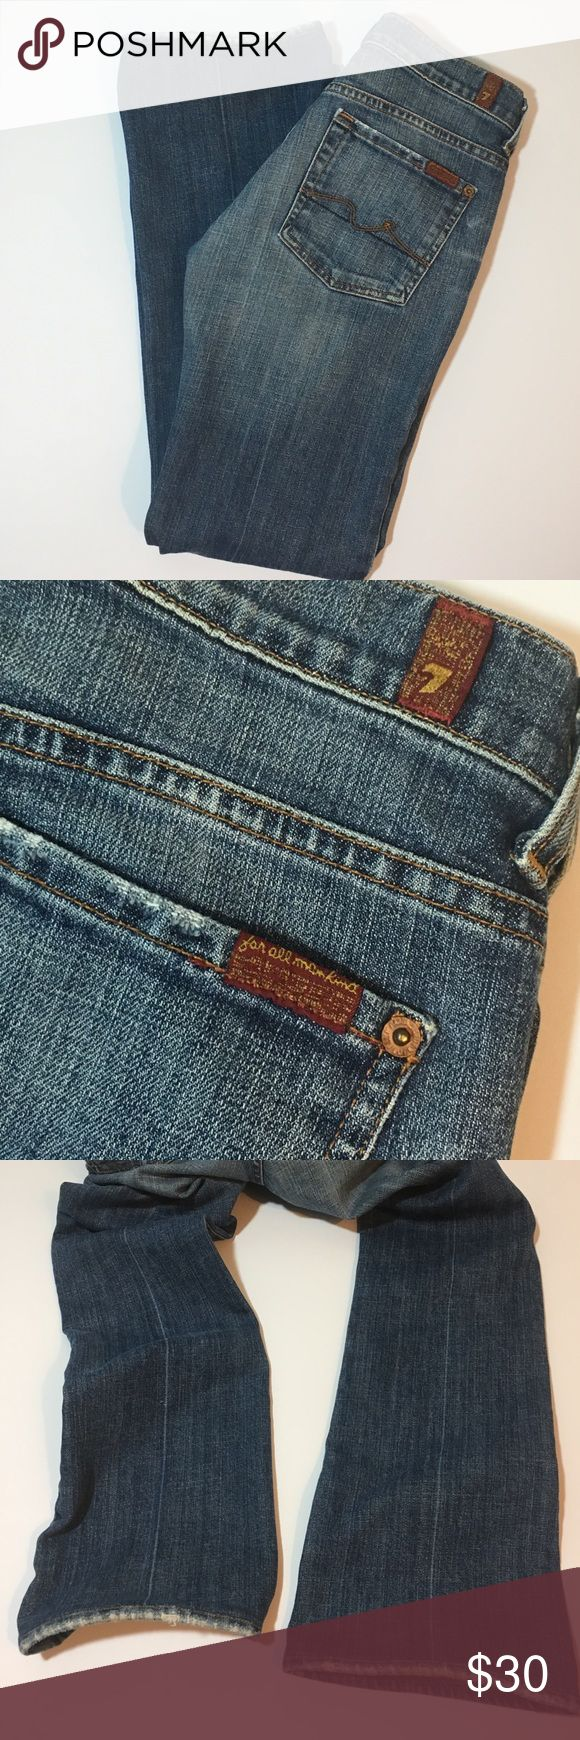 "7 For All Mankind boycut jeans Boy cut style mini boot jeans with button fly by 7 For All Man Kind. Inseam approx 28"", rise approx 7.5"" 🌸automatically save when you bundle or make an offer🌸 7 For All Mankind Jeans Boot Cut"